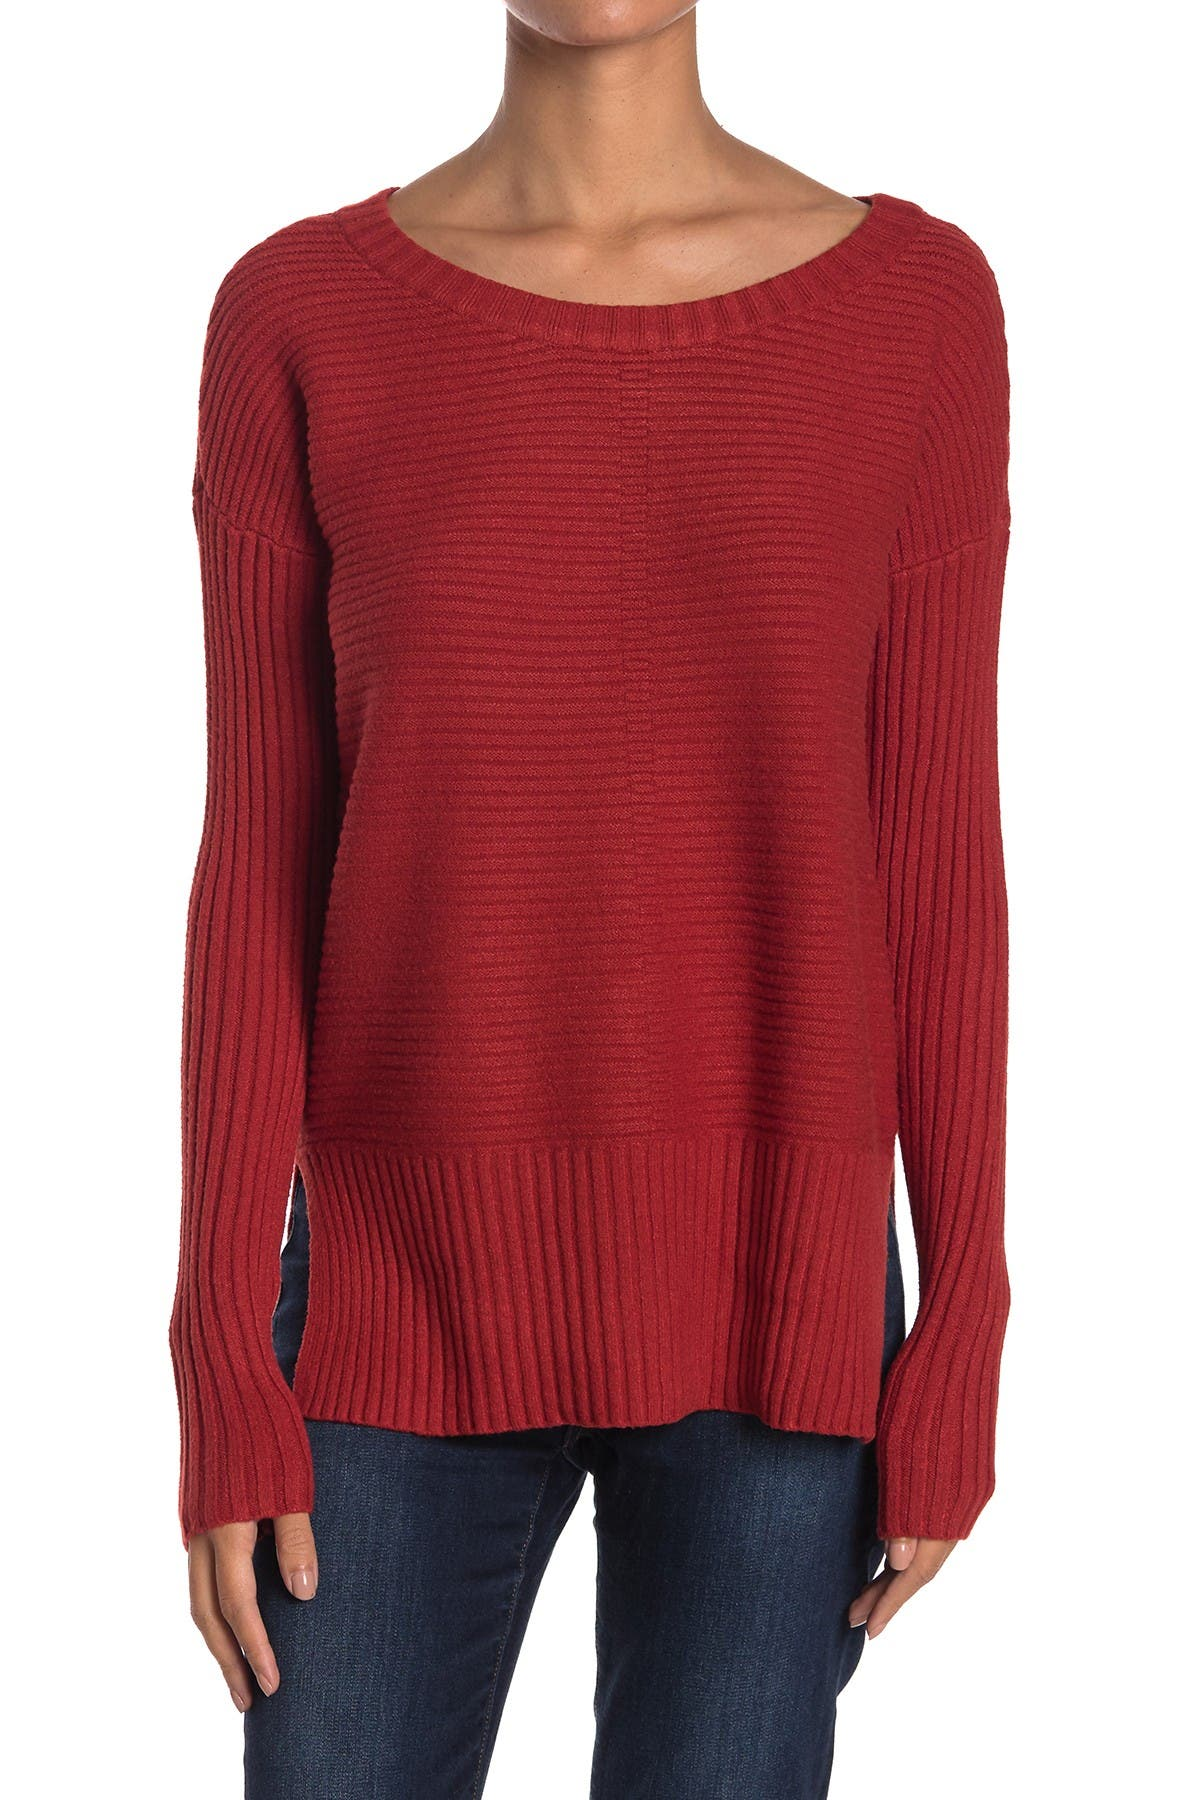 Image of Cyrus Rib Knit Pullover Sweater